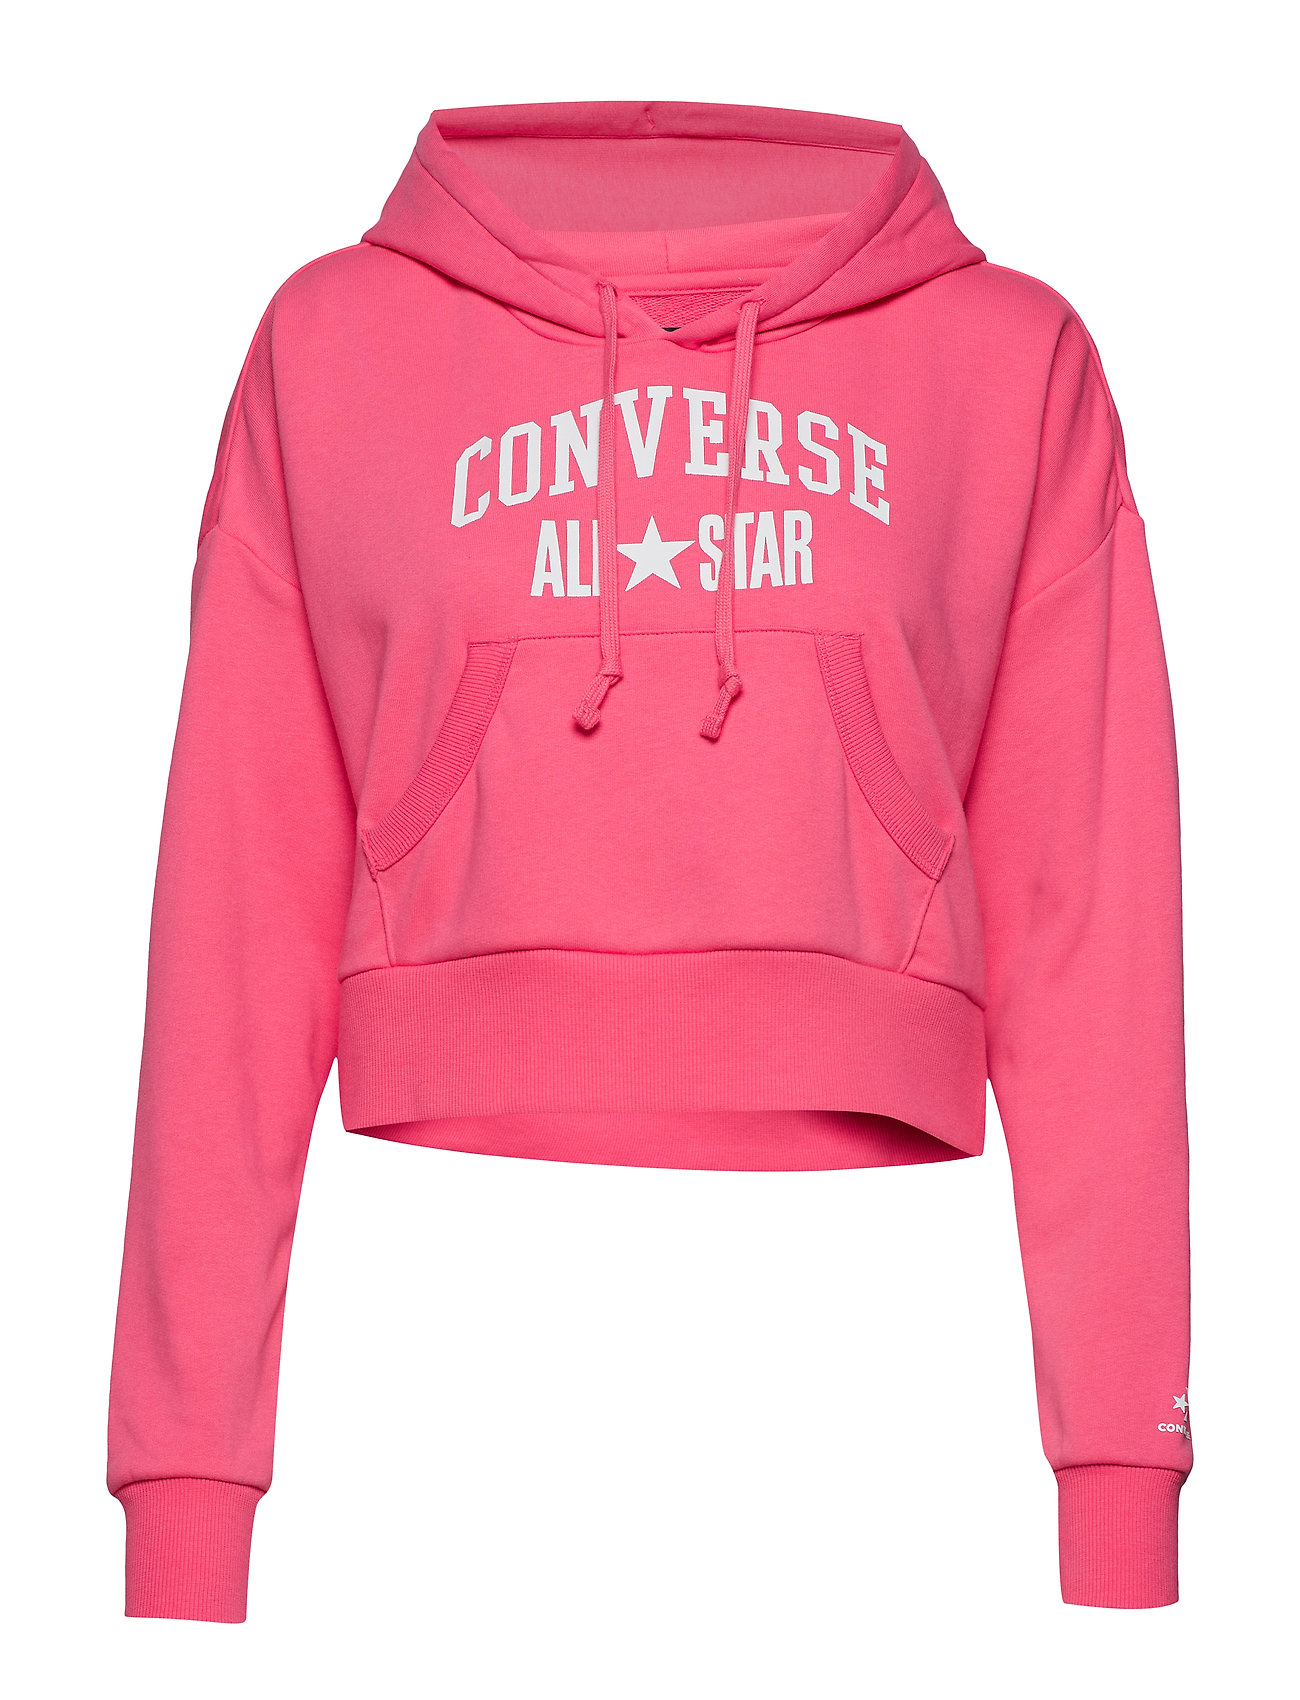 Converse Converse All Star Pullover Hoodie - STAWRBERRY JAM